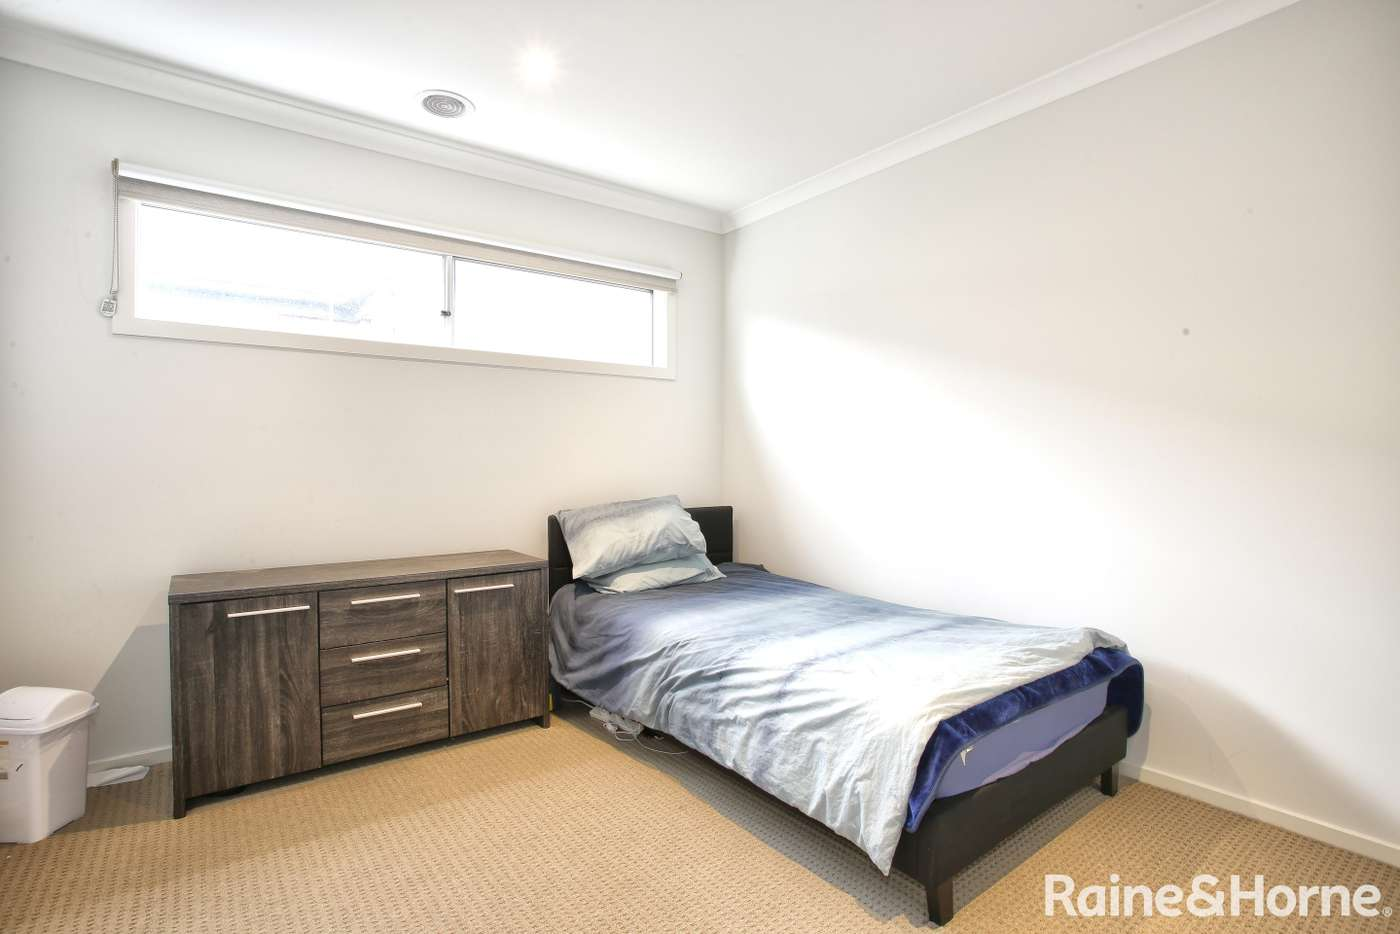 Seventh view of Homely house listing, 17 Observation Drive, Roxburgh Park VIC 3064